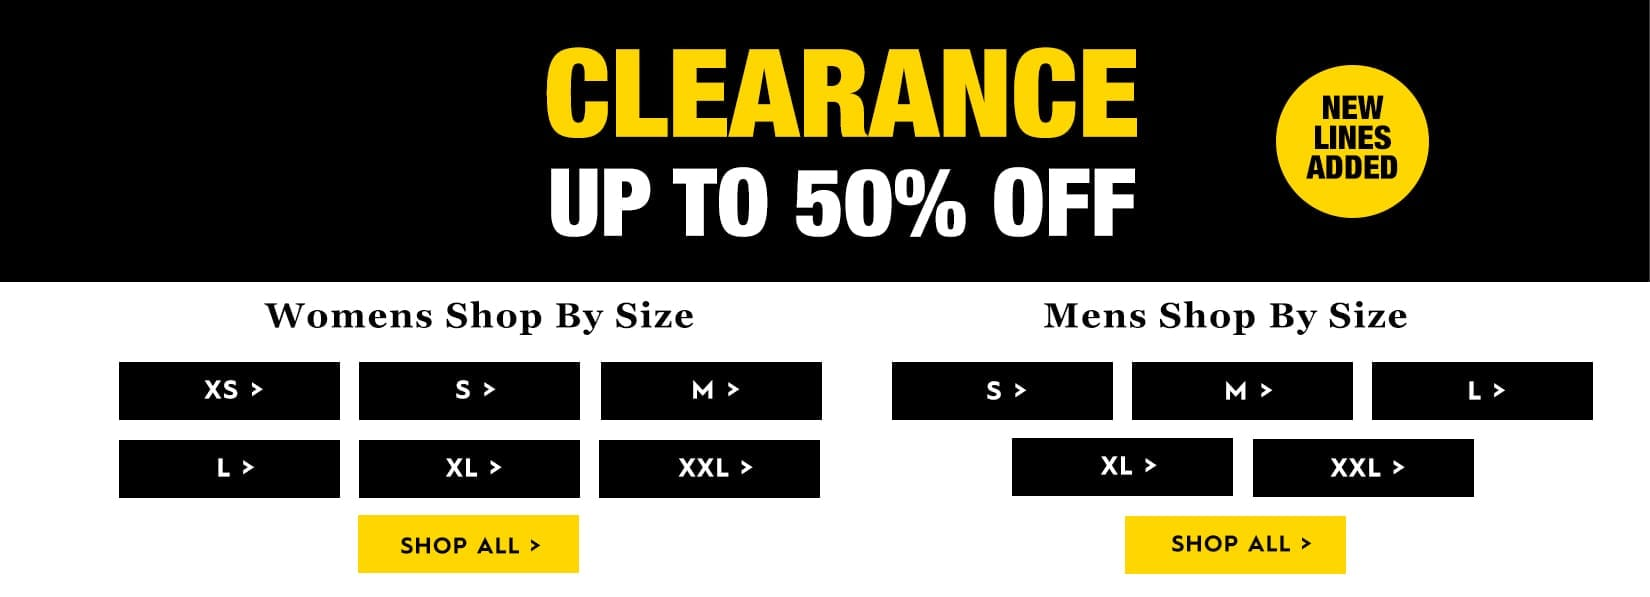 Clearance New Lines Added